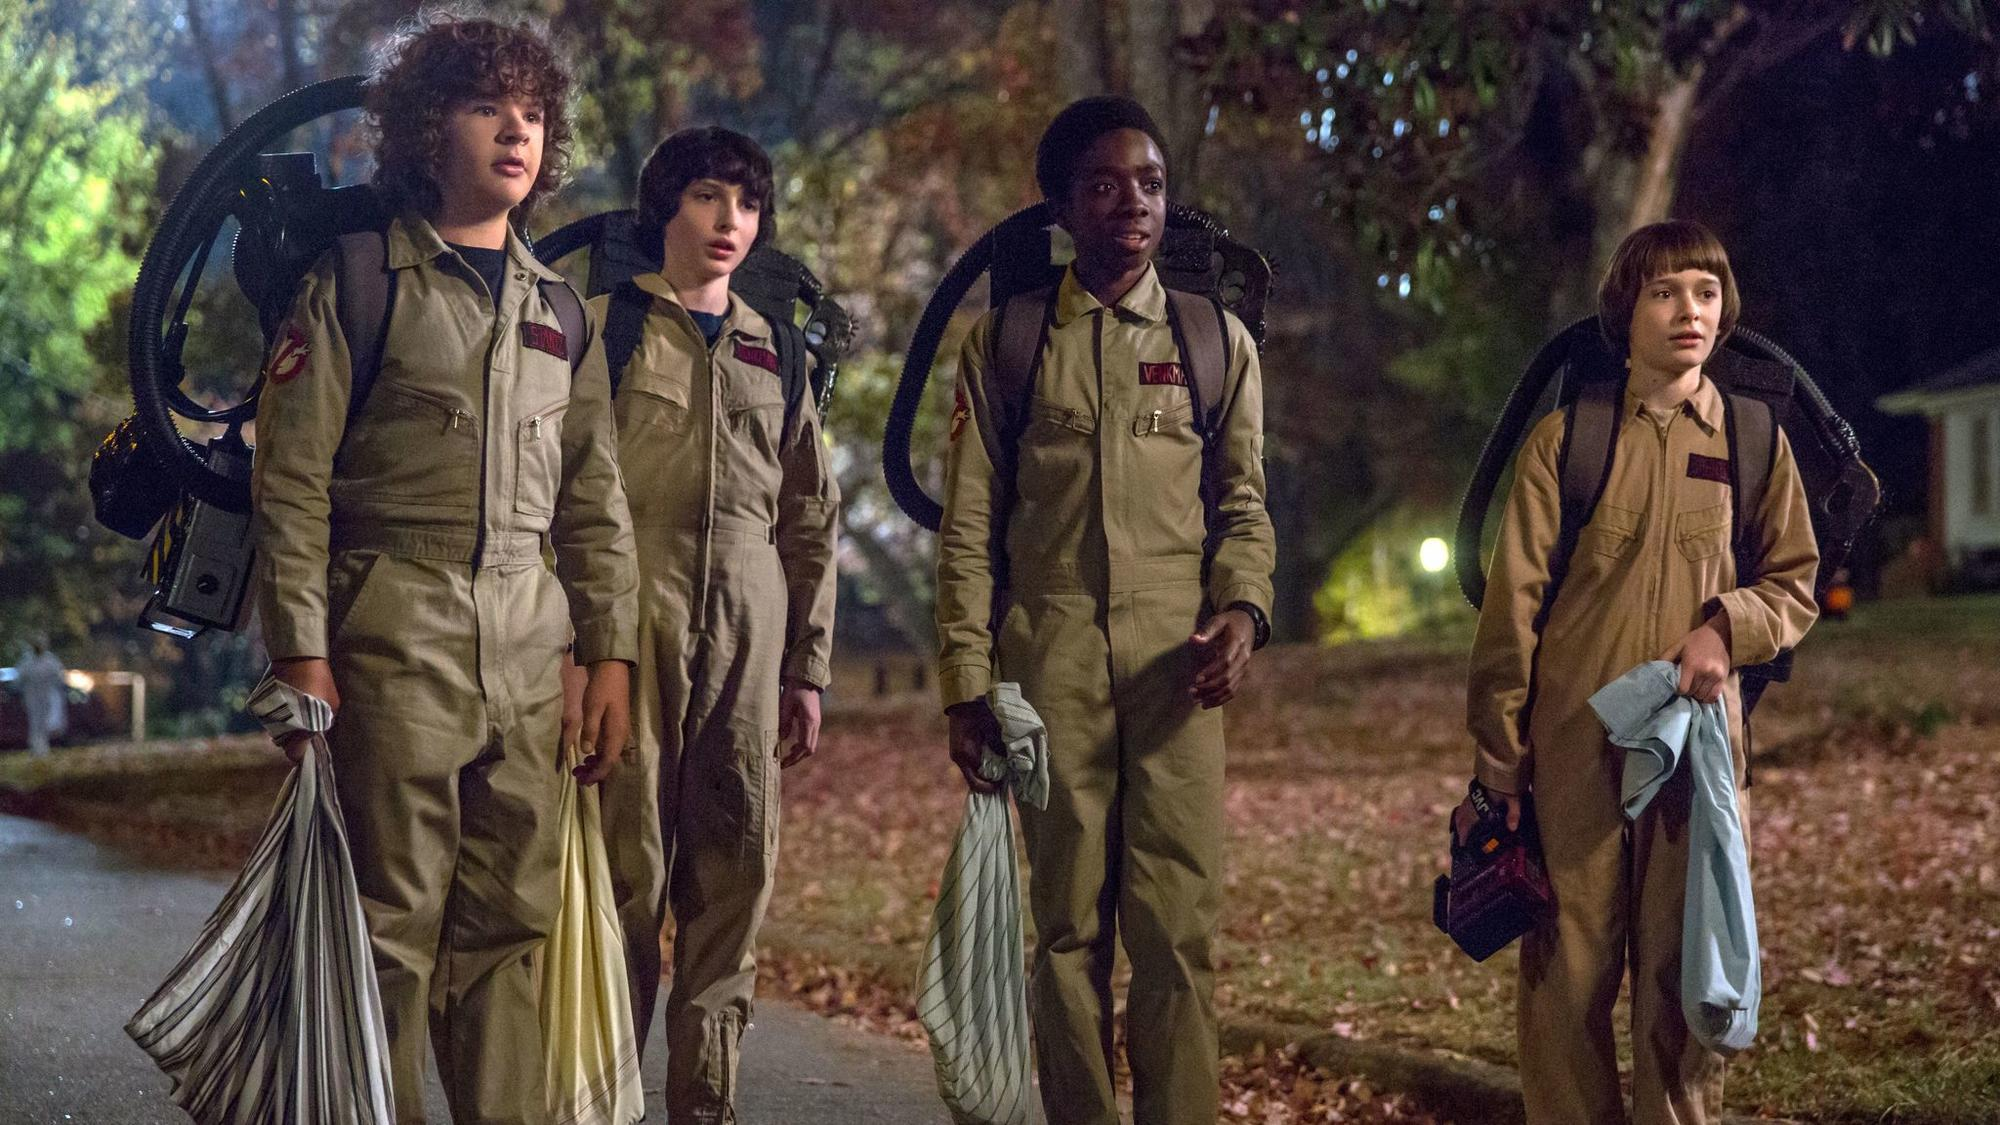 Stranger Things Season 2 facts